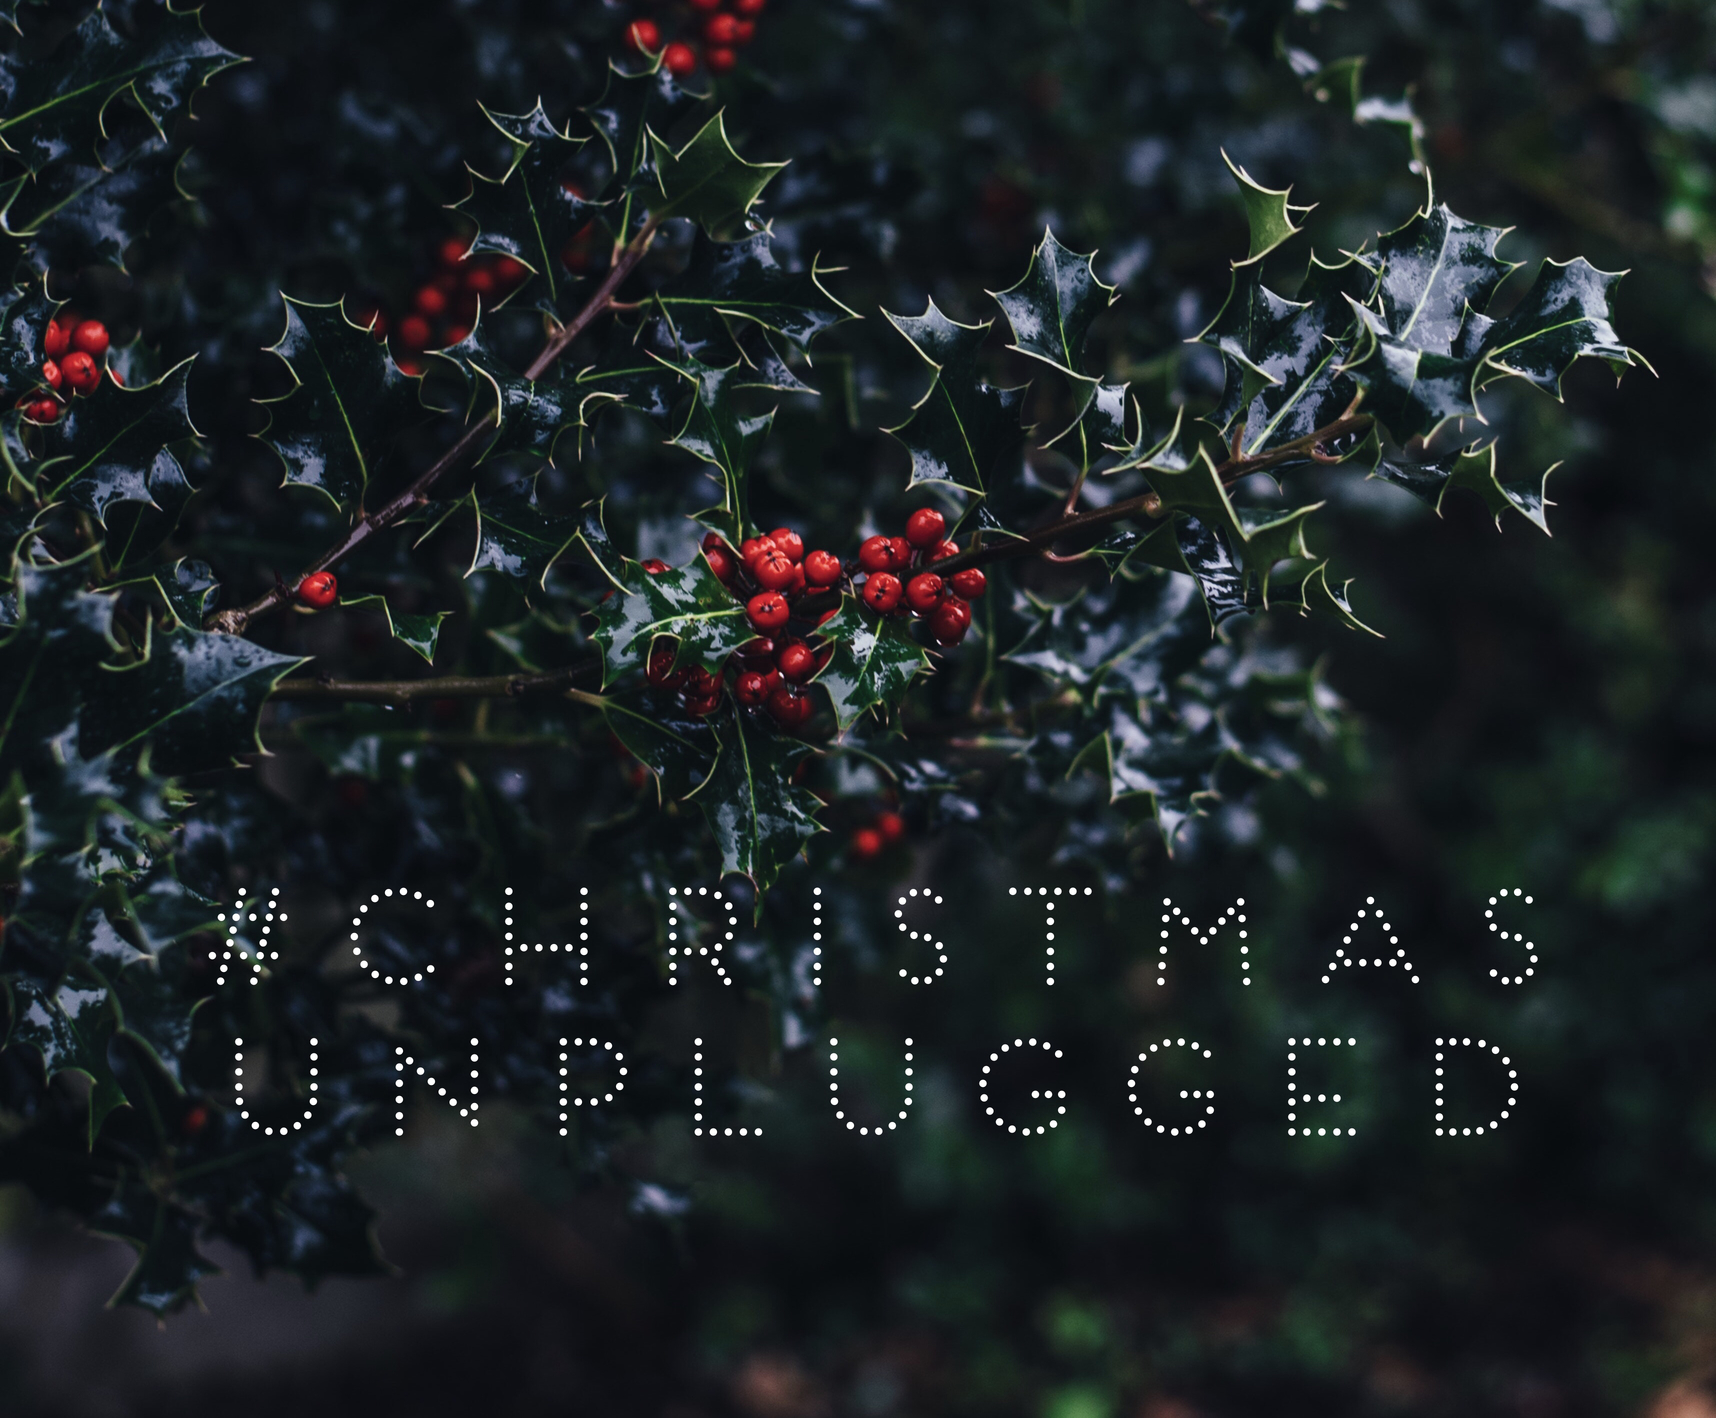 #ChristmasUnplugged digital detox competition